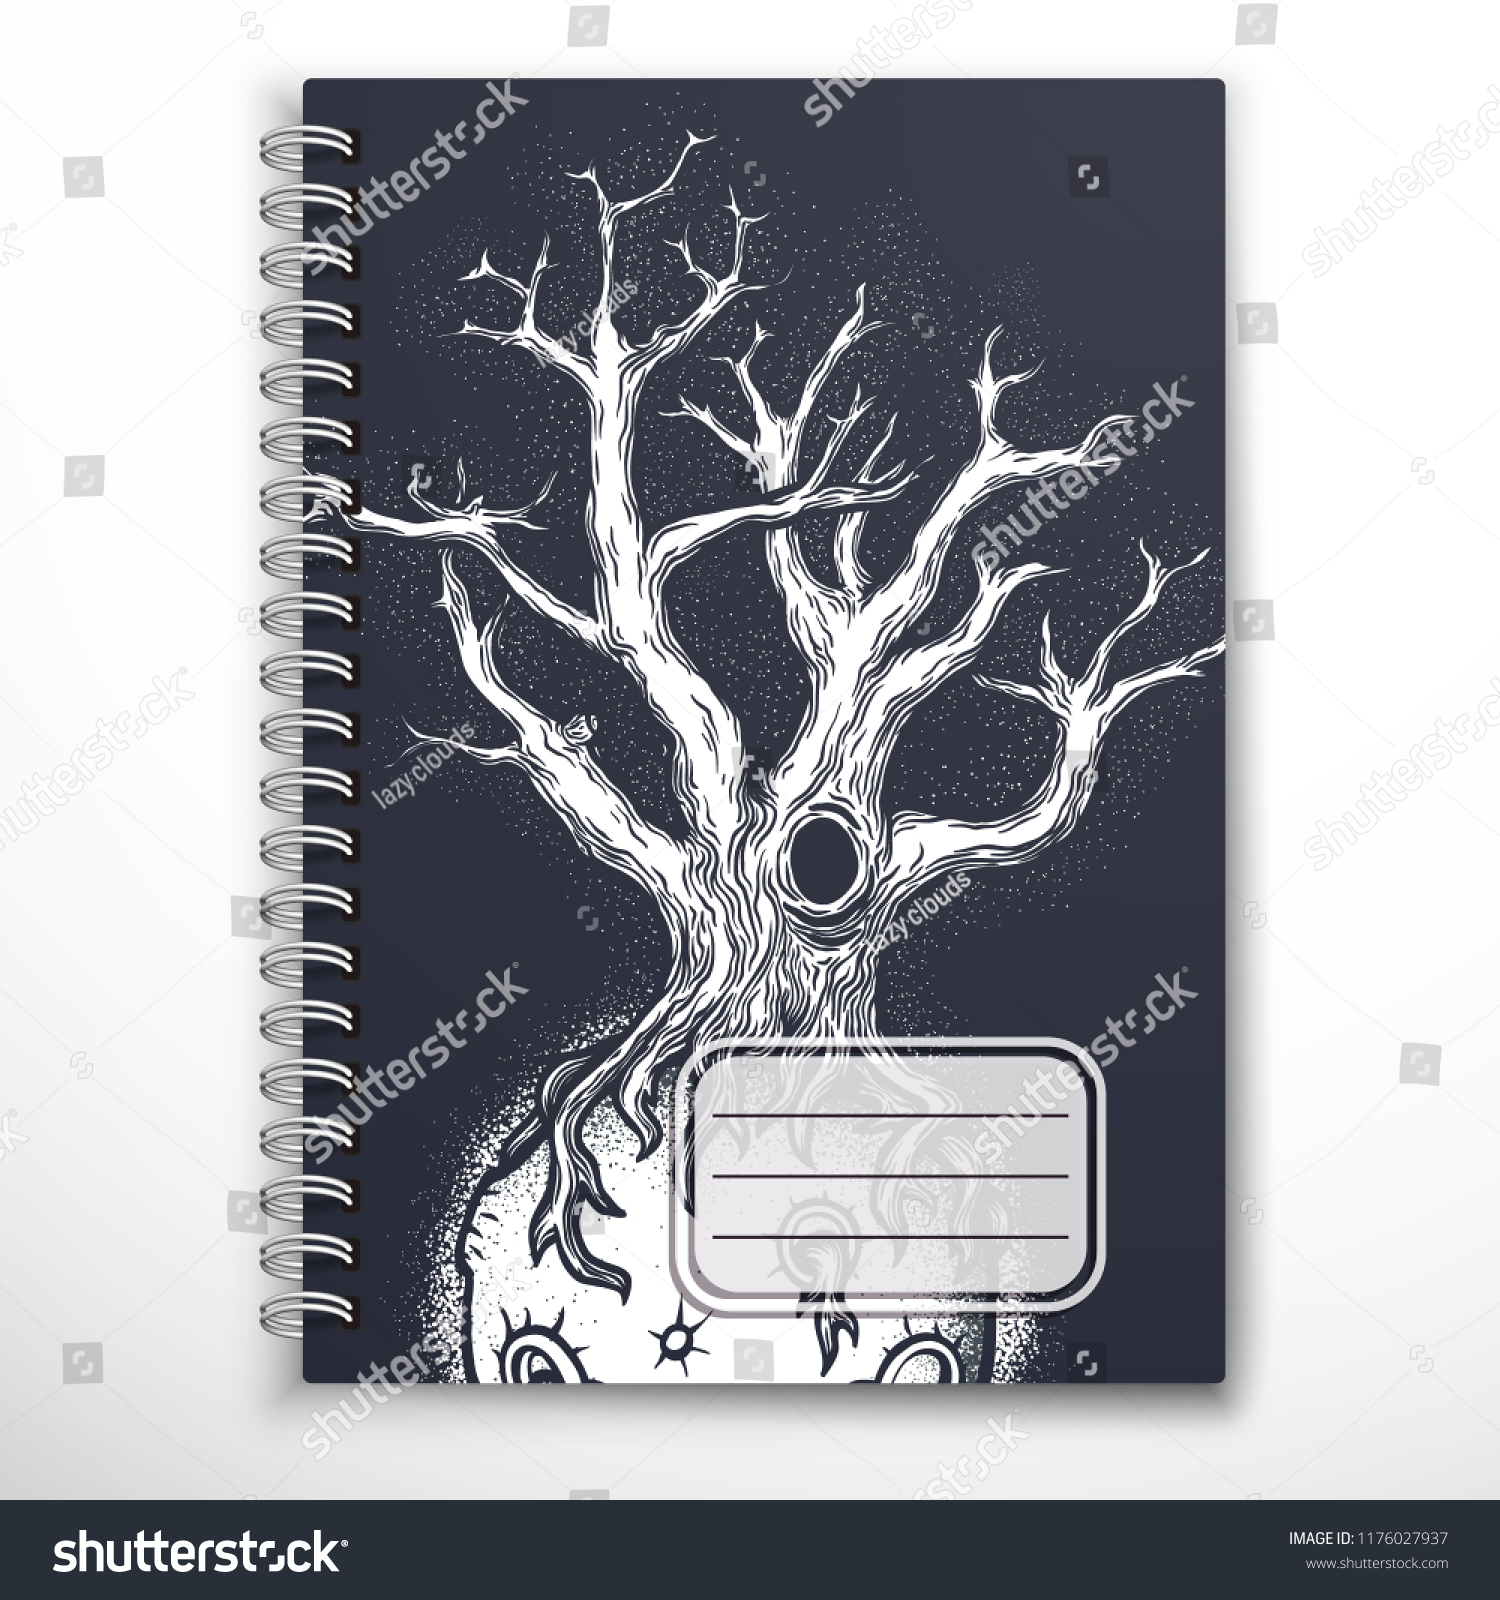 Notebook Cover Template Mysterious Abstract Space Stock Vector